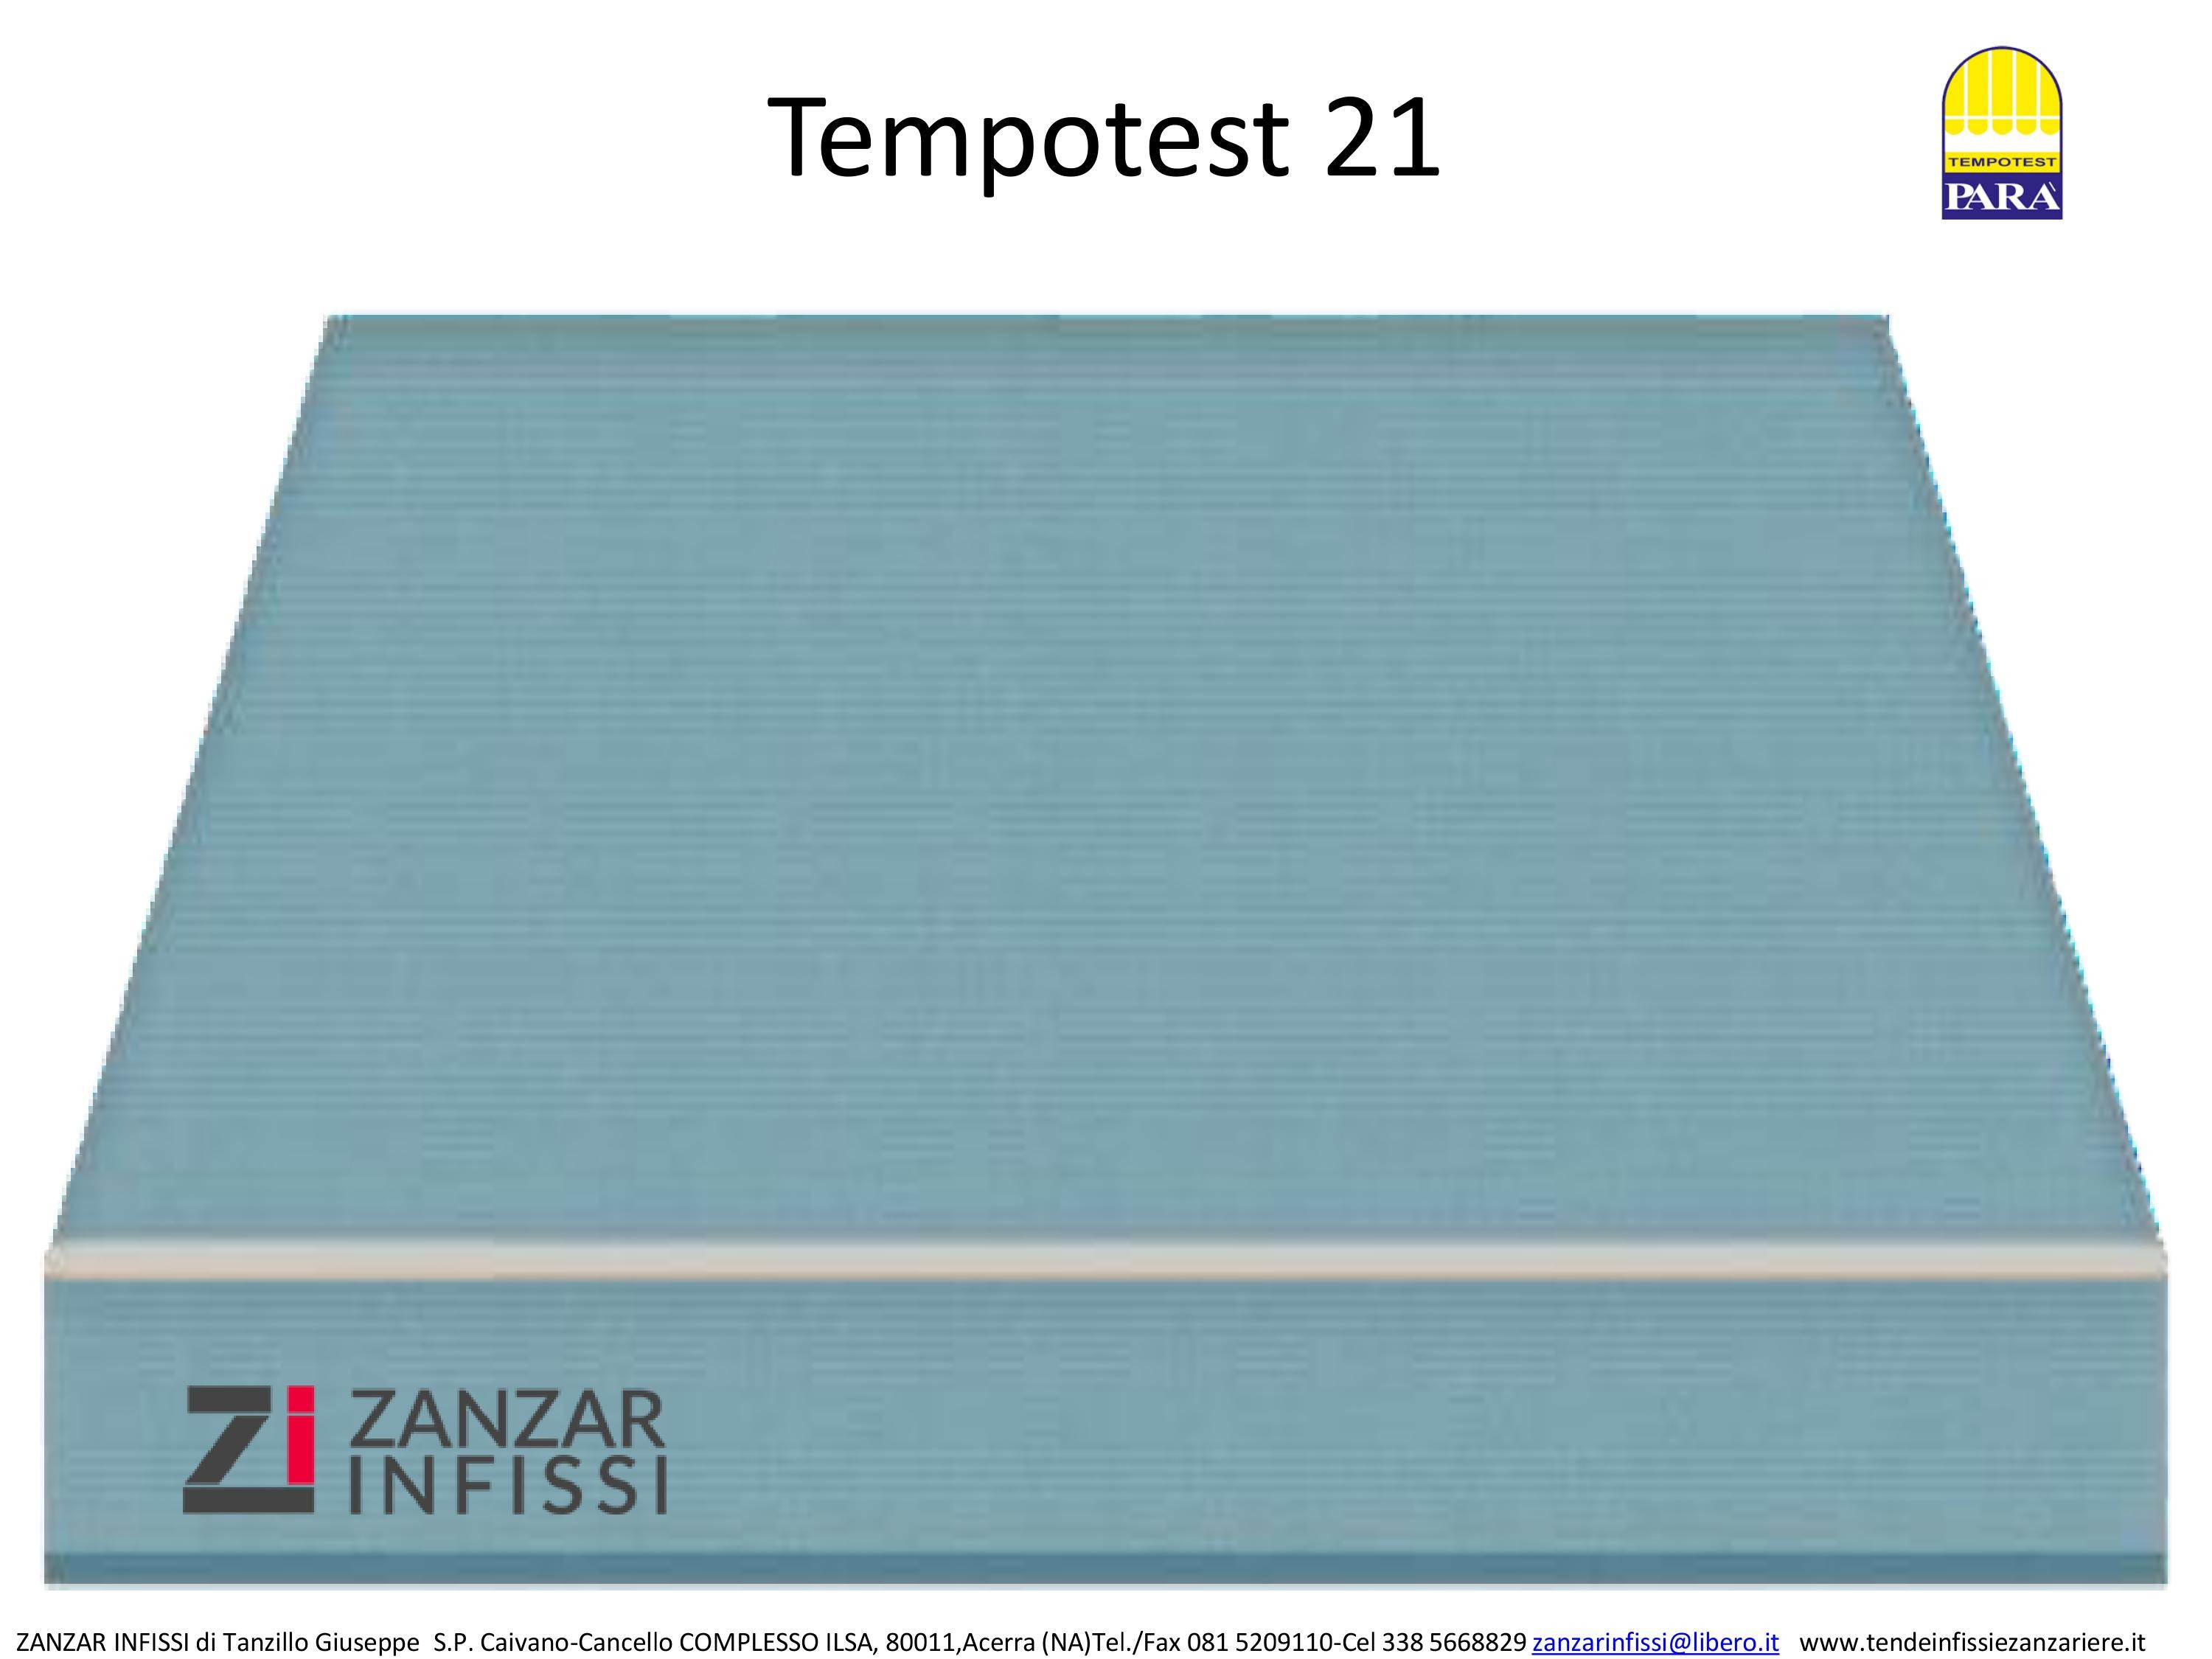 Tempotest 21